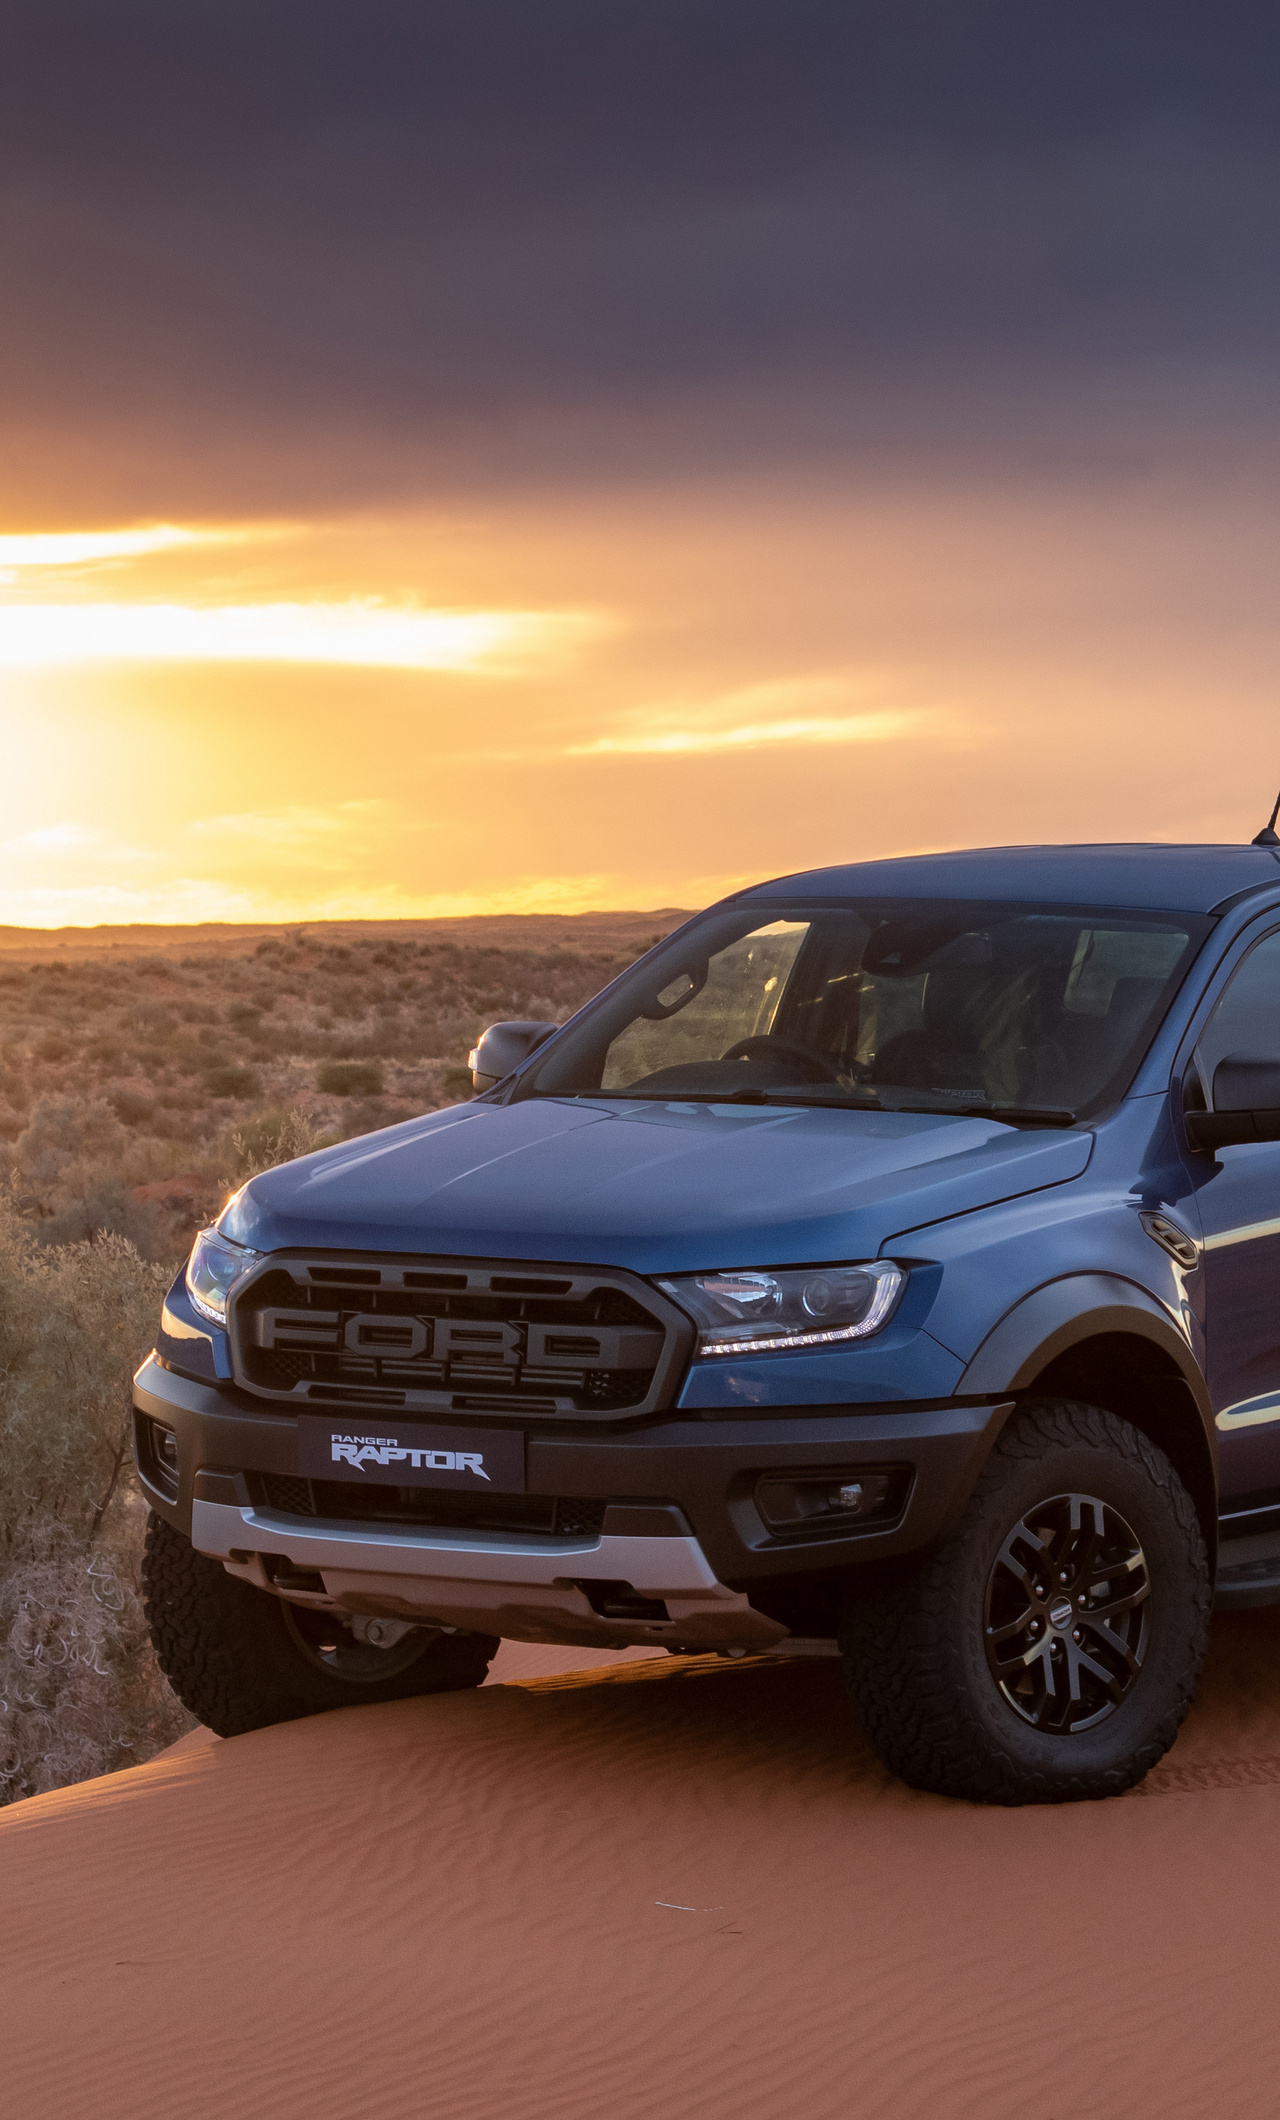 1280x2120 Ford Ranger Raptor 2019 5k iPhone 6+ HD 4k